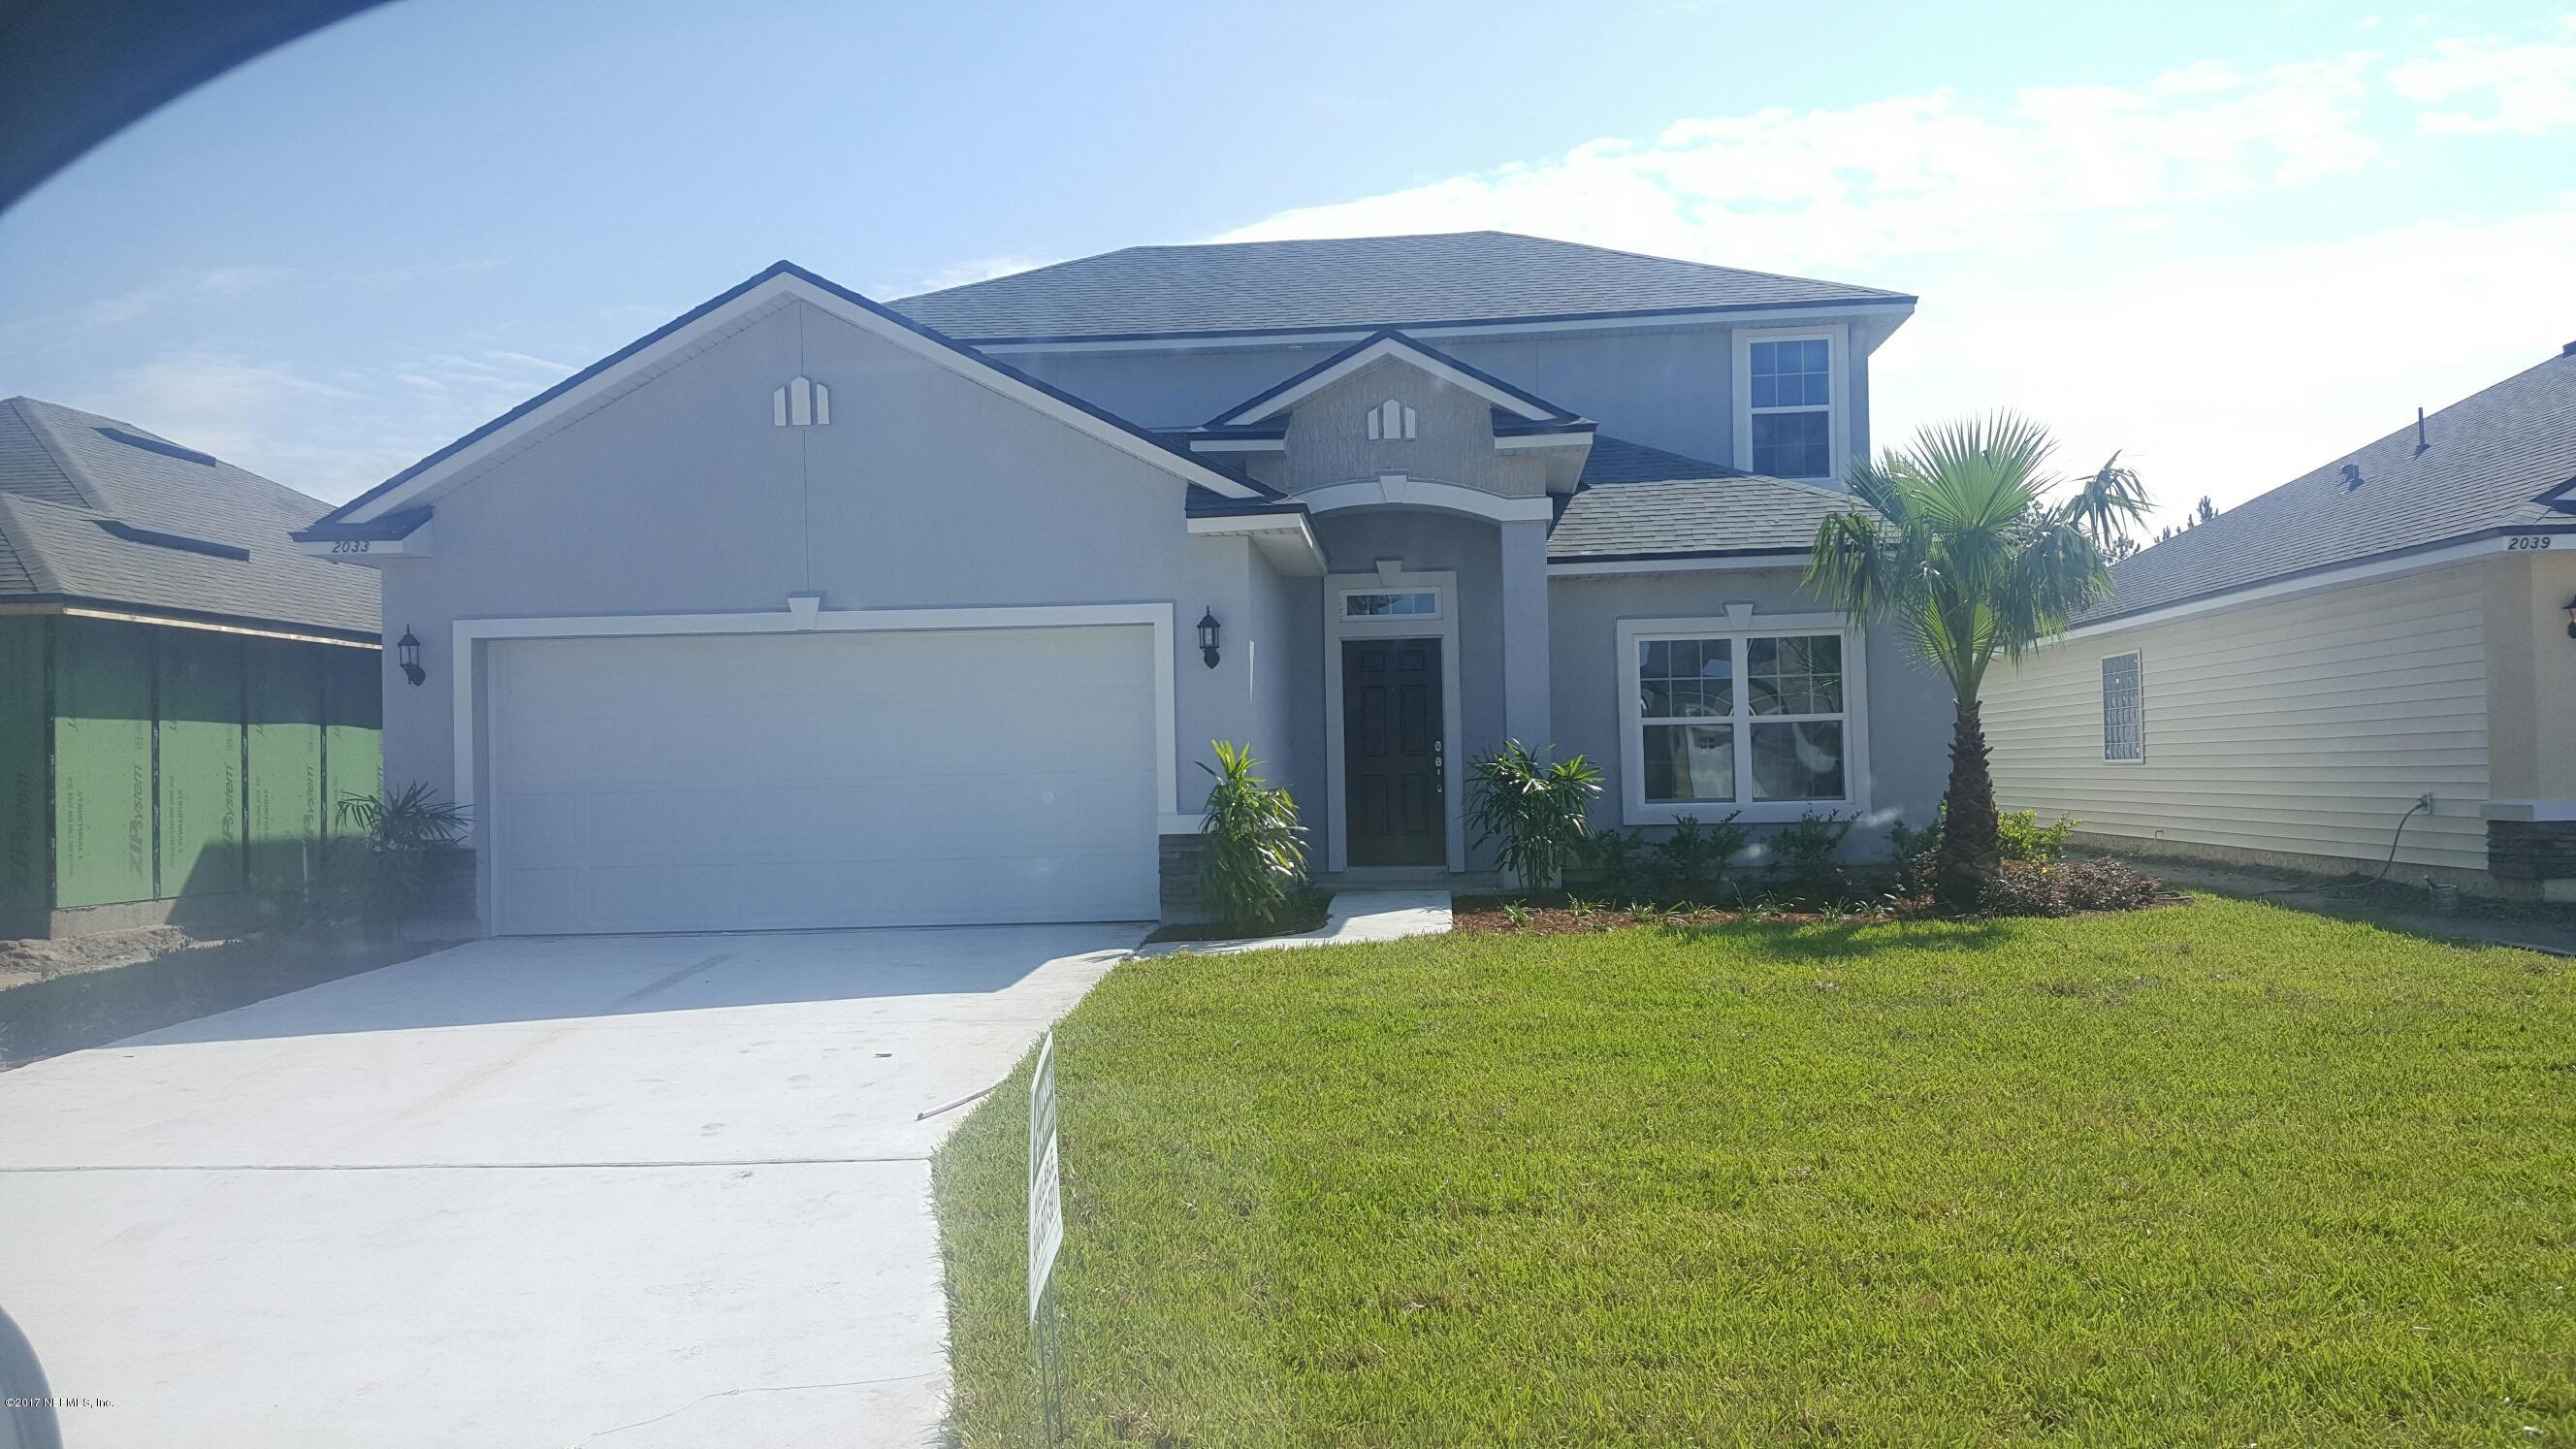 2033 PATRIOT WALK, JACKSONVILLE, FLORIDA 32221, 3 Bedrooms Bedrooms, ,2 BathroomsBathrooms,Residential - single family,For sale,PATRIOT WALK,887672